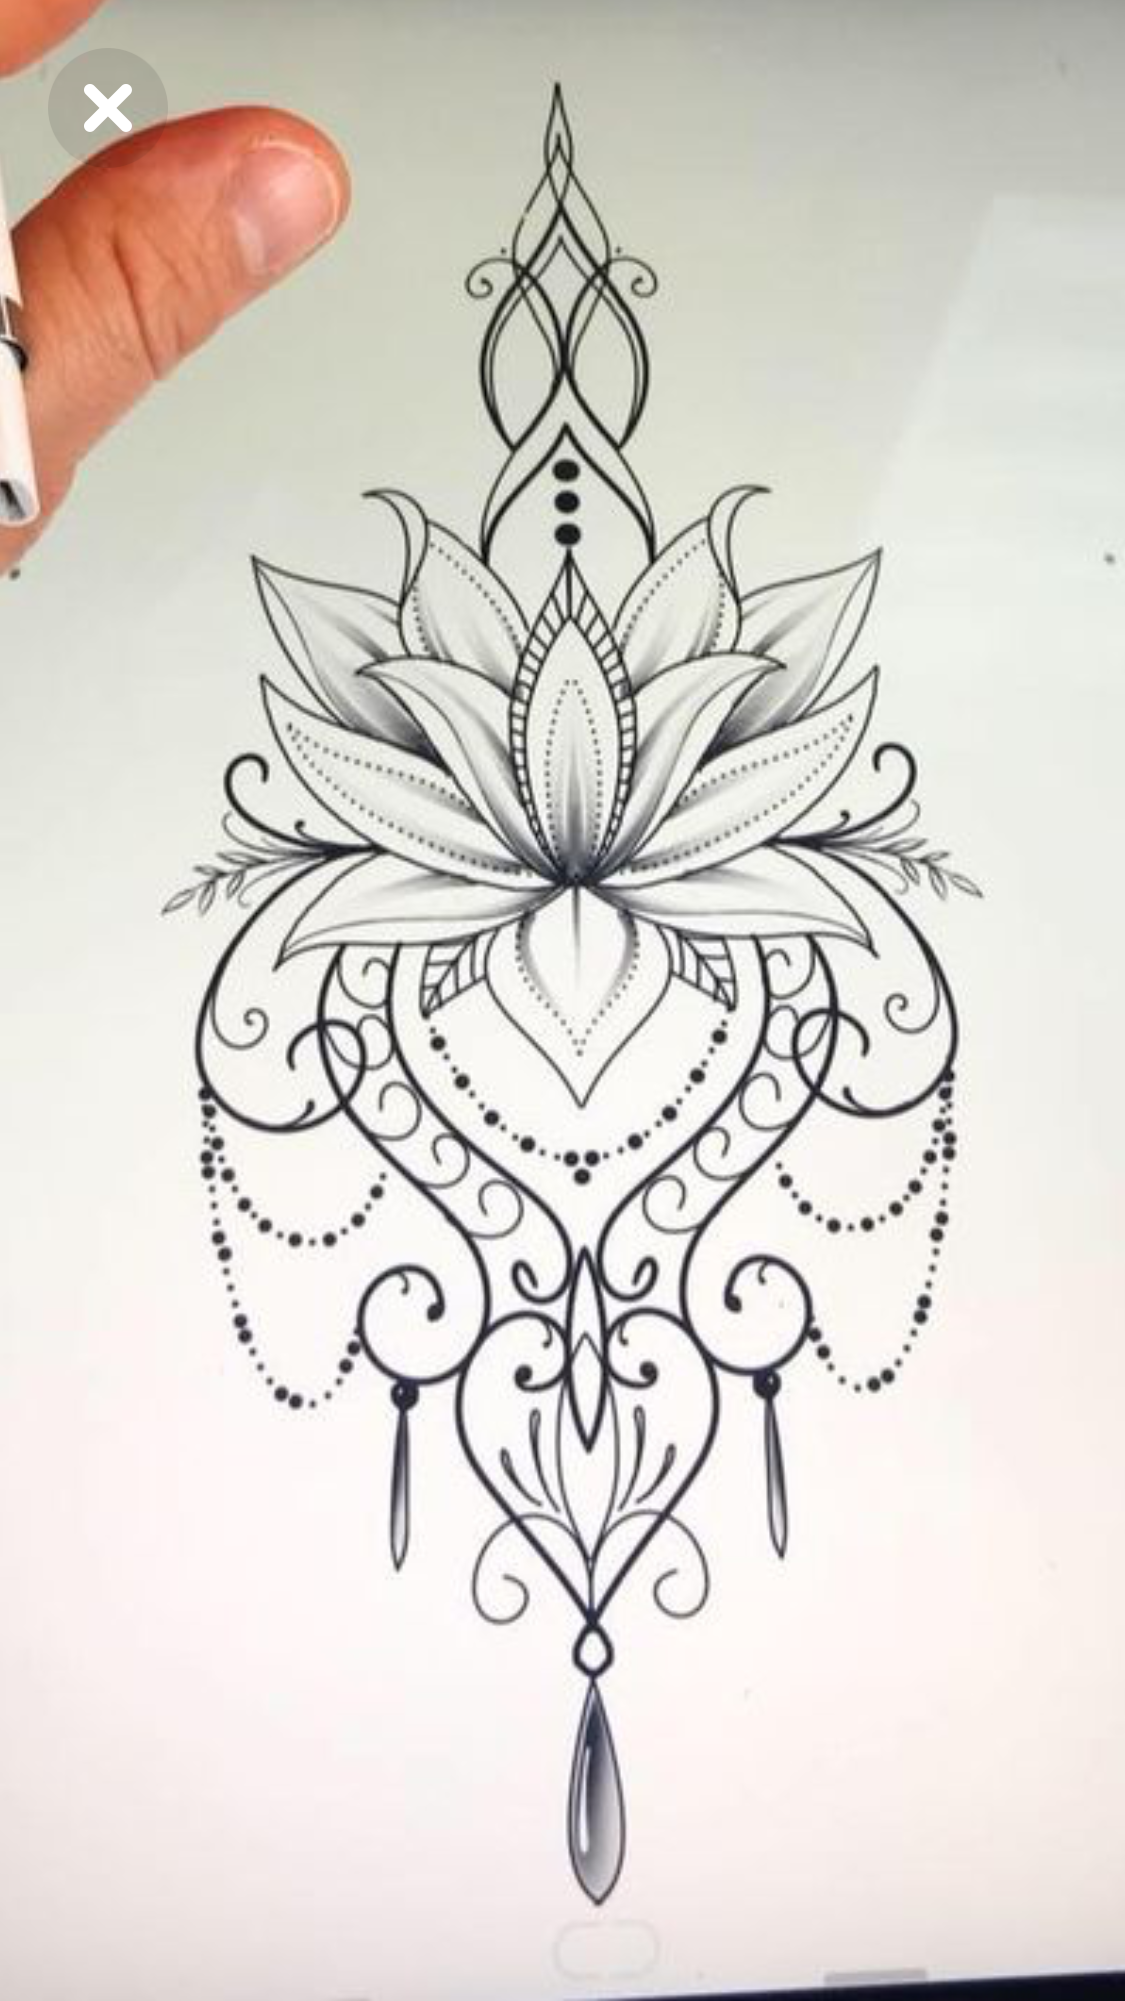 Mandala Design Tattoo Tatts Pinterest Tatouage Pochoirs